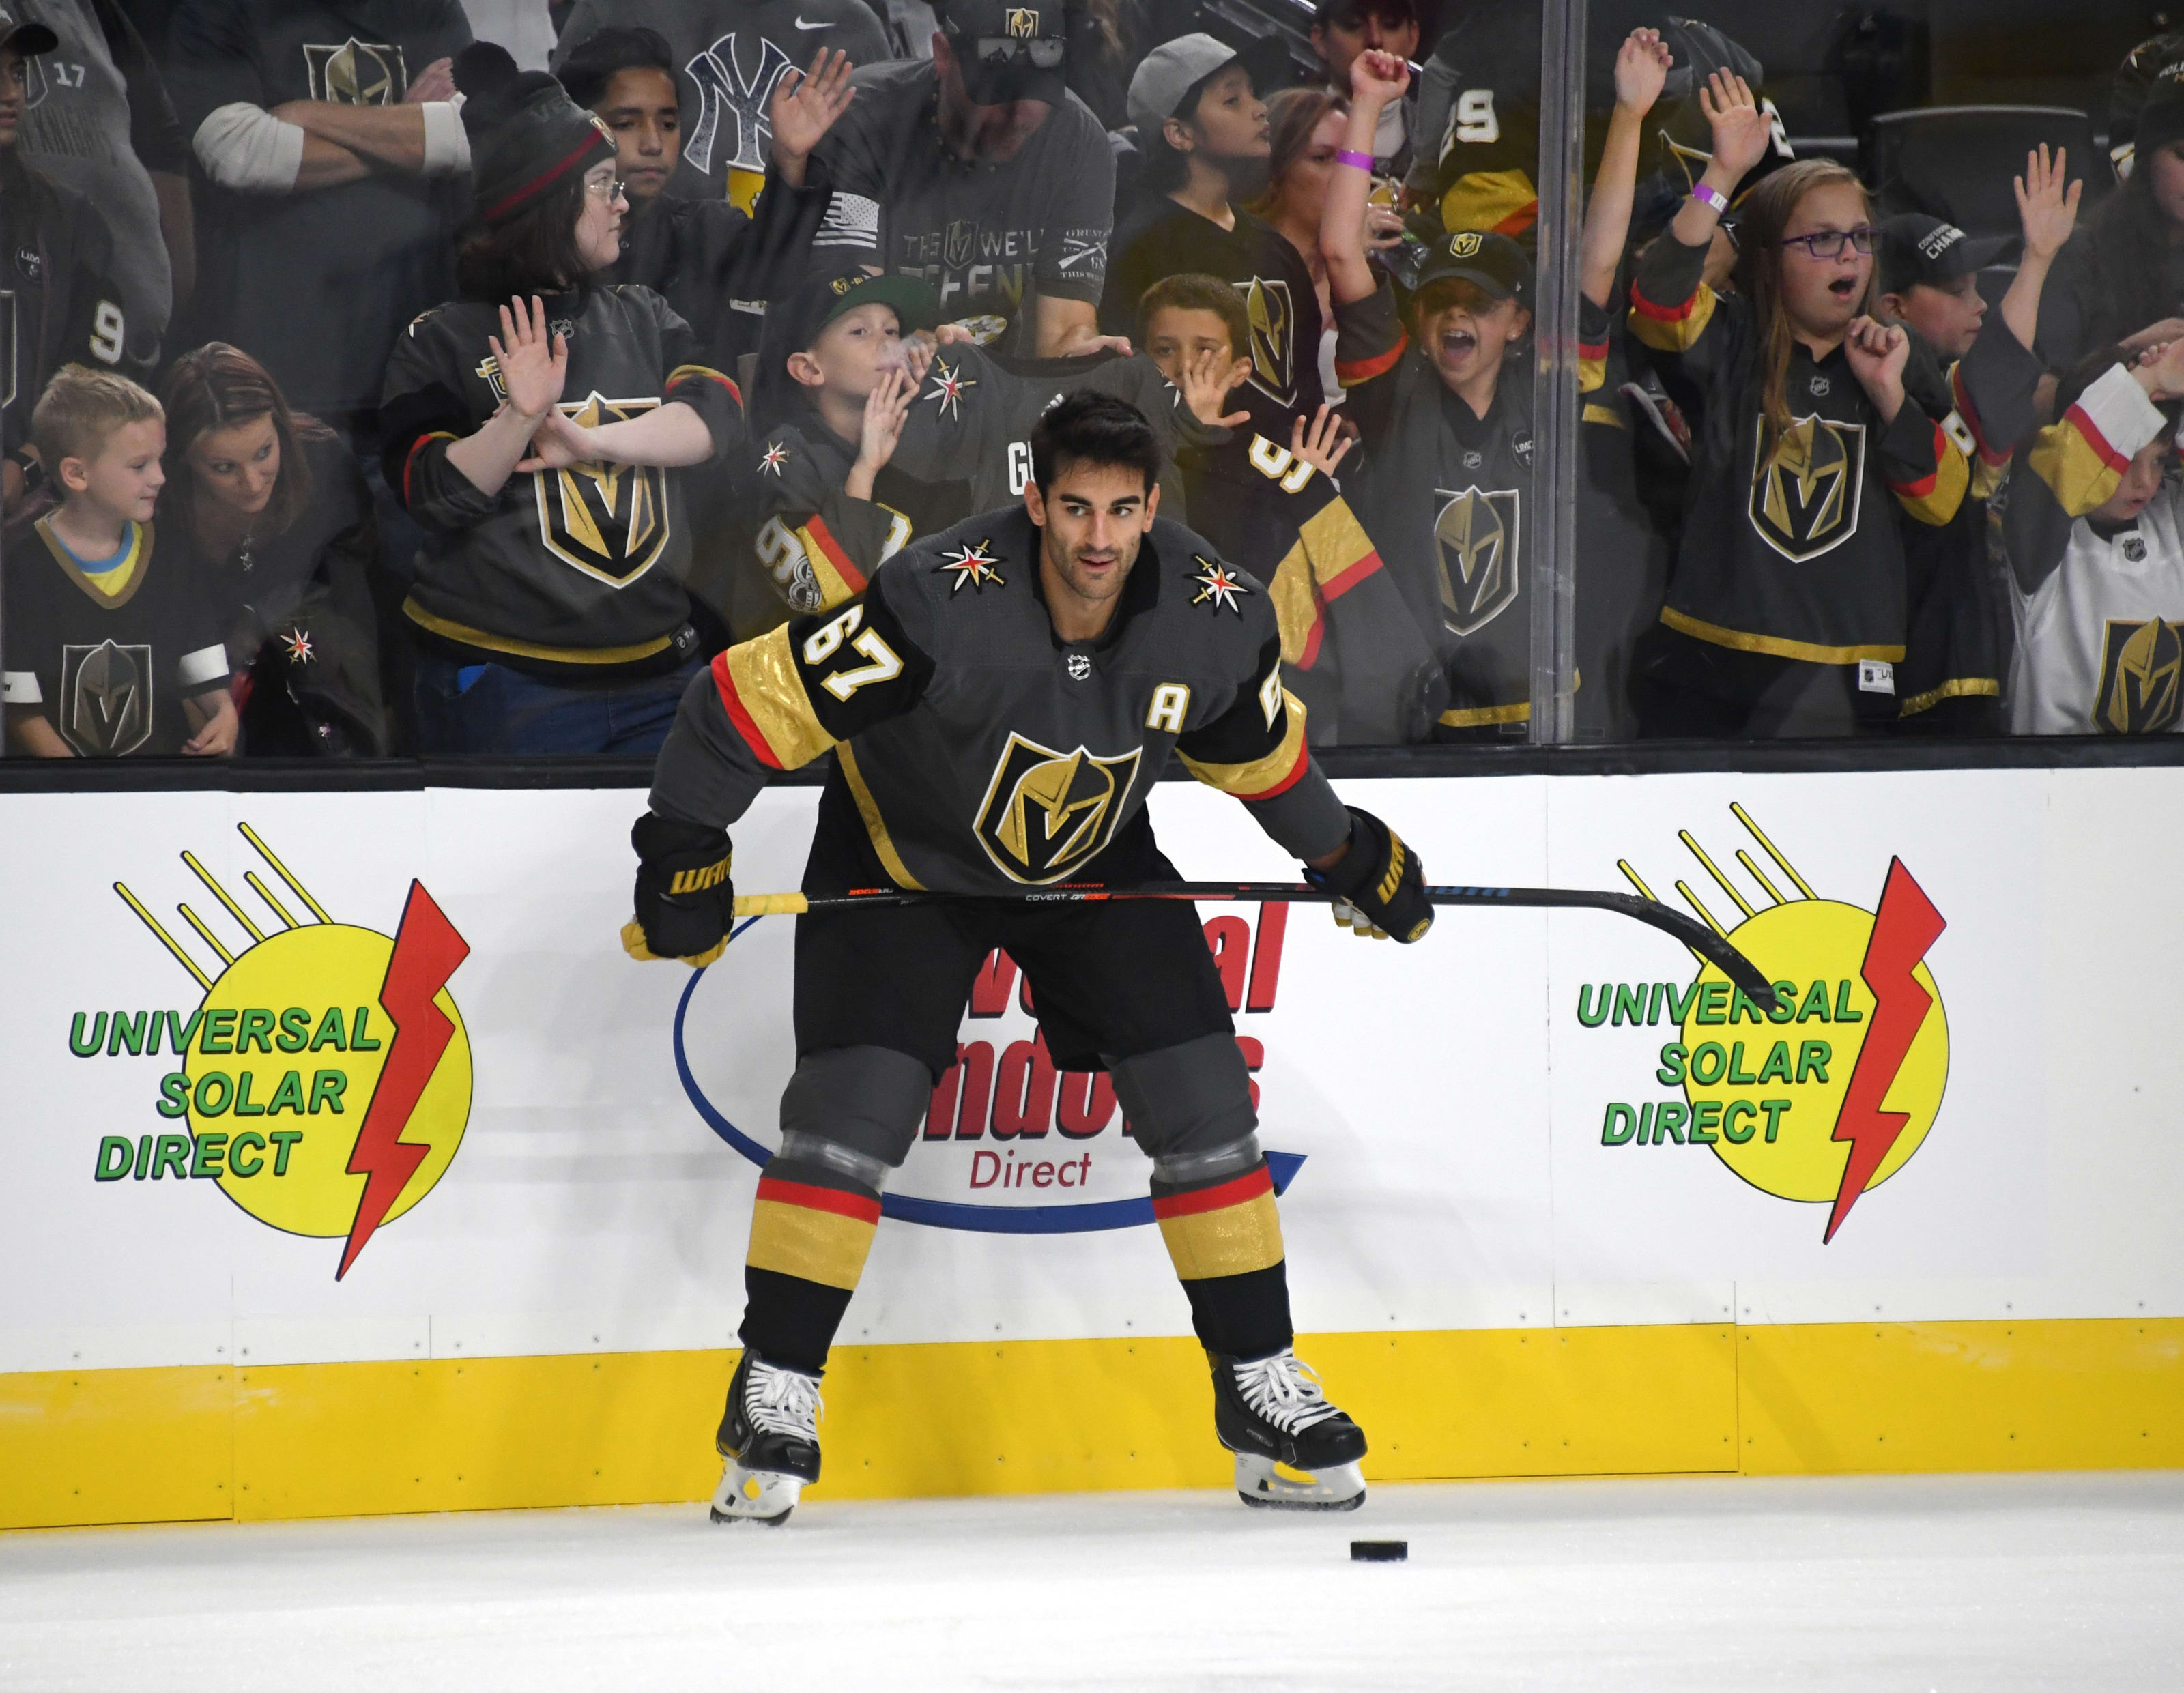 Max Pacioretty #67 of the Vegas Golden Knights stands on the ice during warmups.